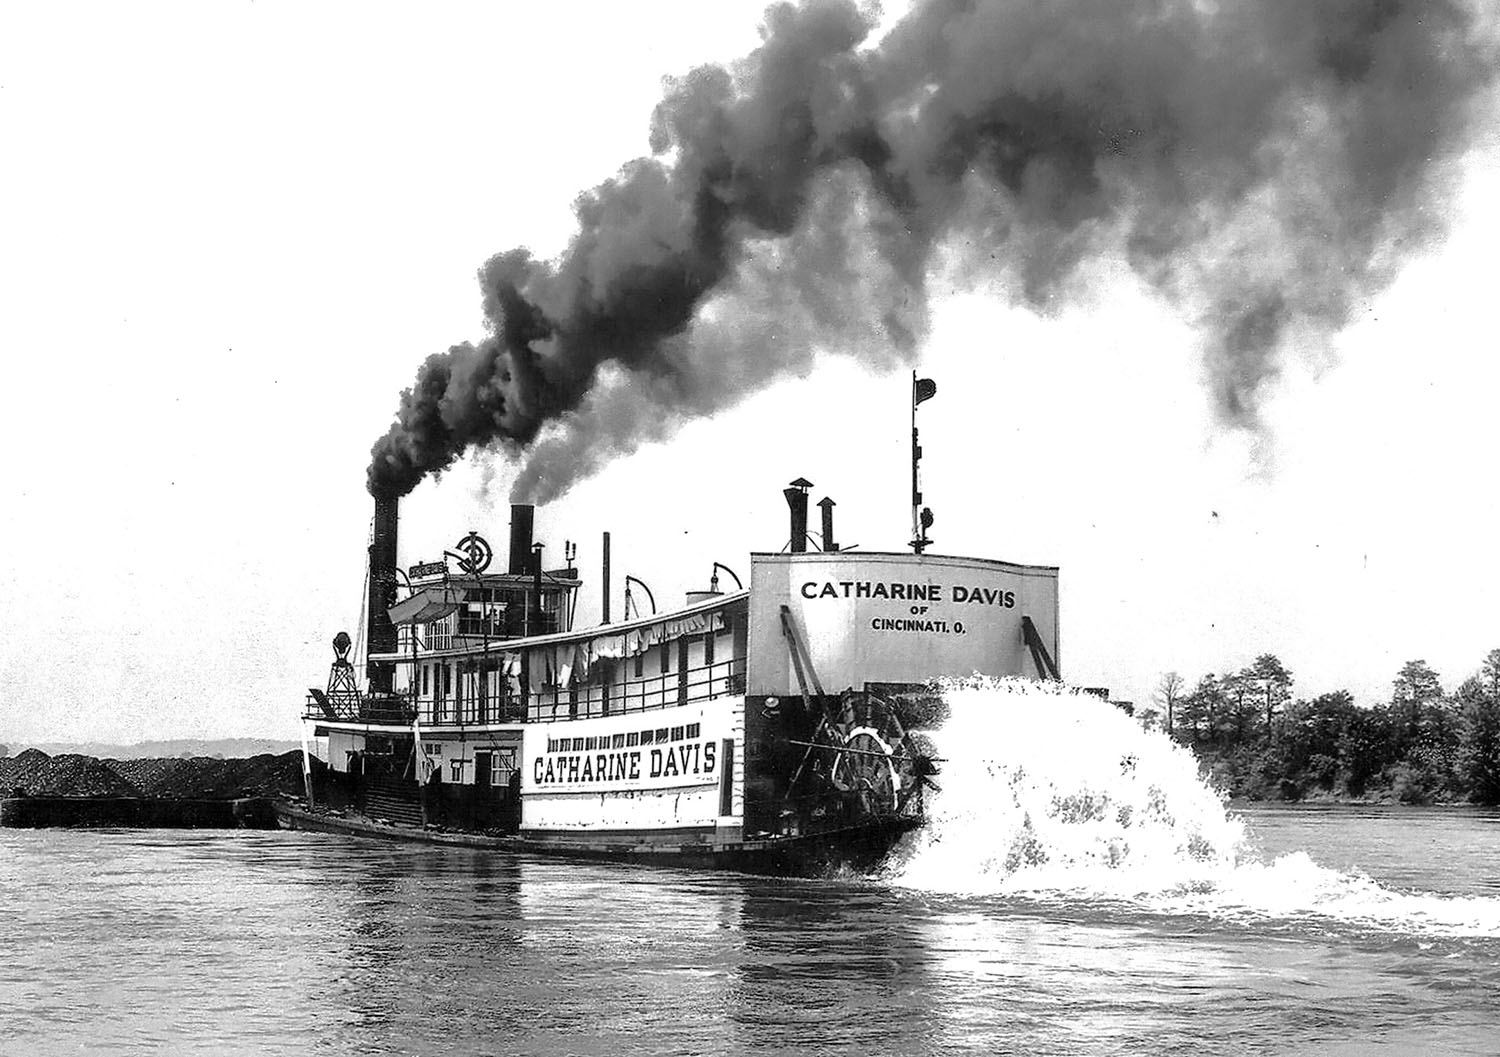 The Second Towboat Catharine Davis